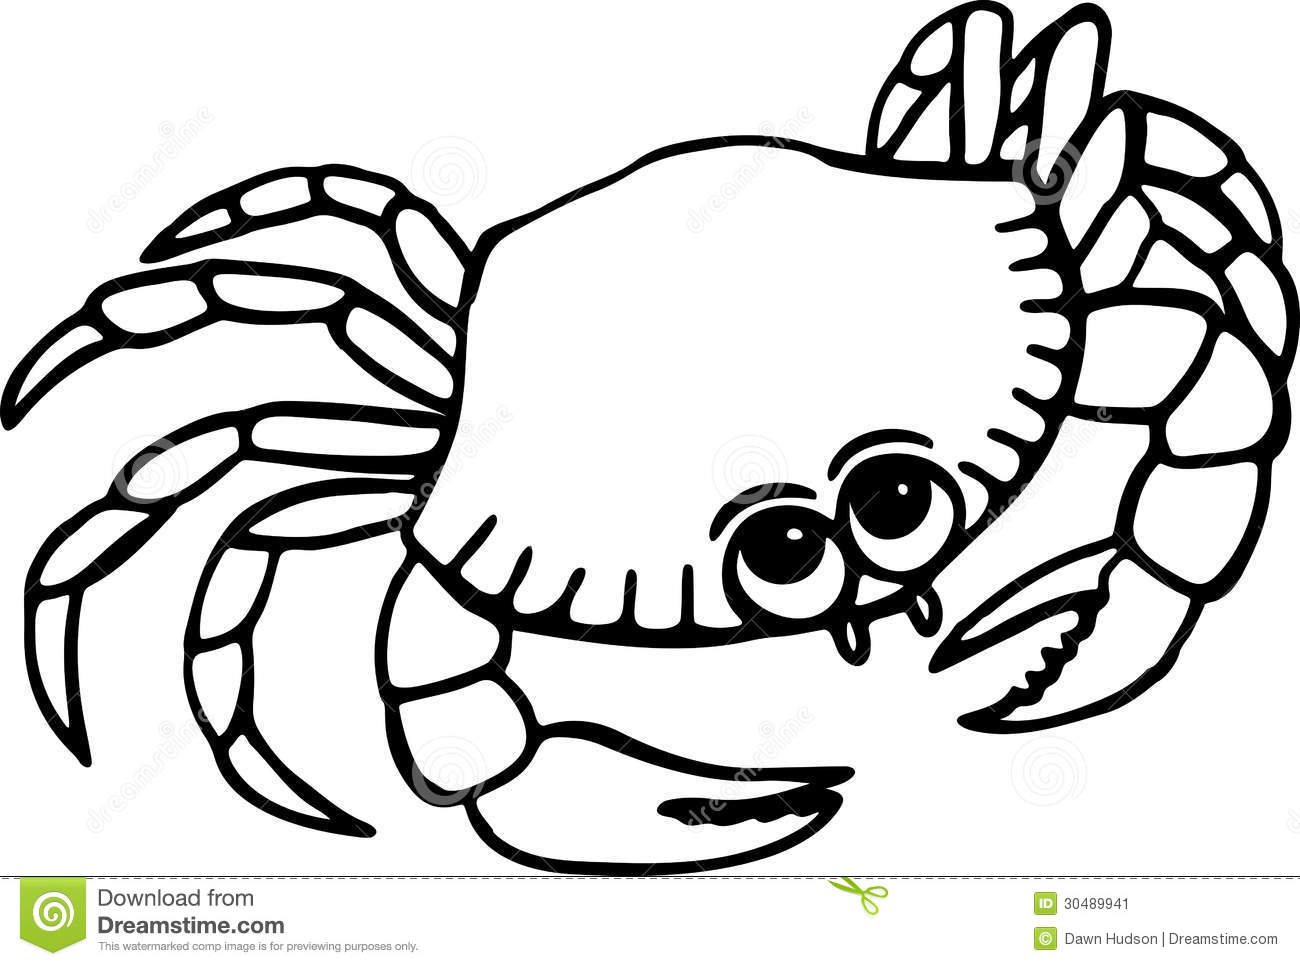 Crab Clipart Free | Free download best Crab Clipart Free on ...